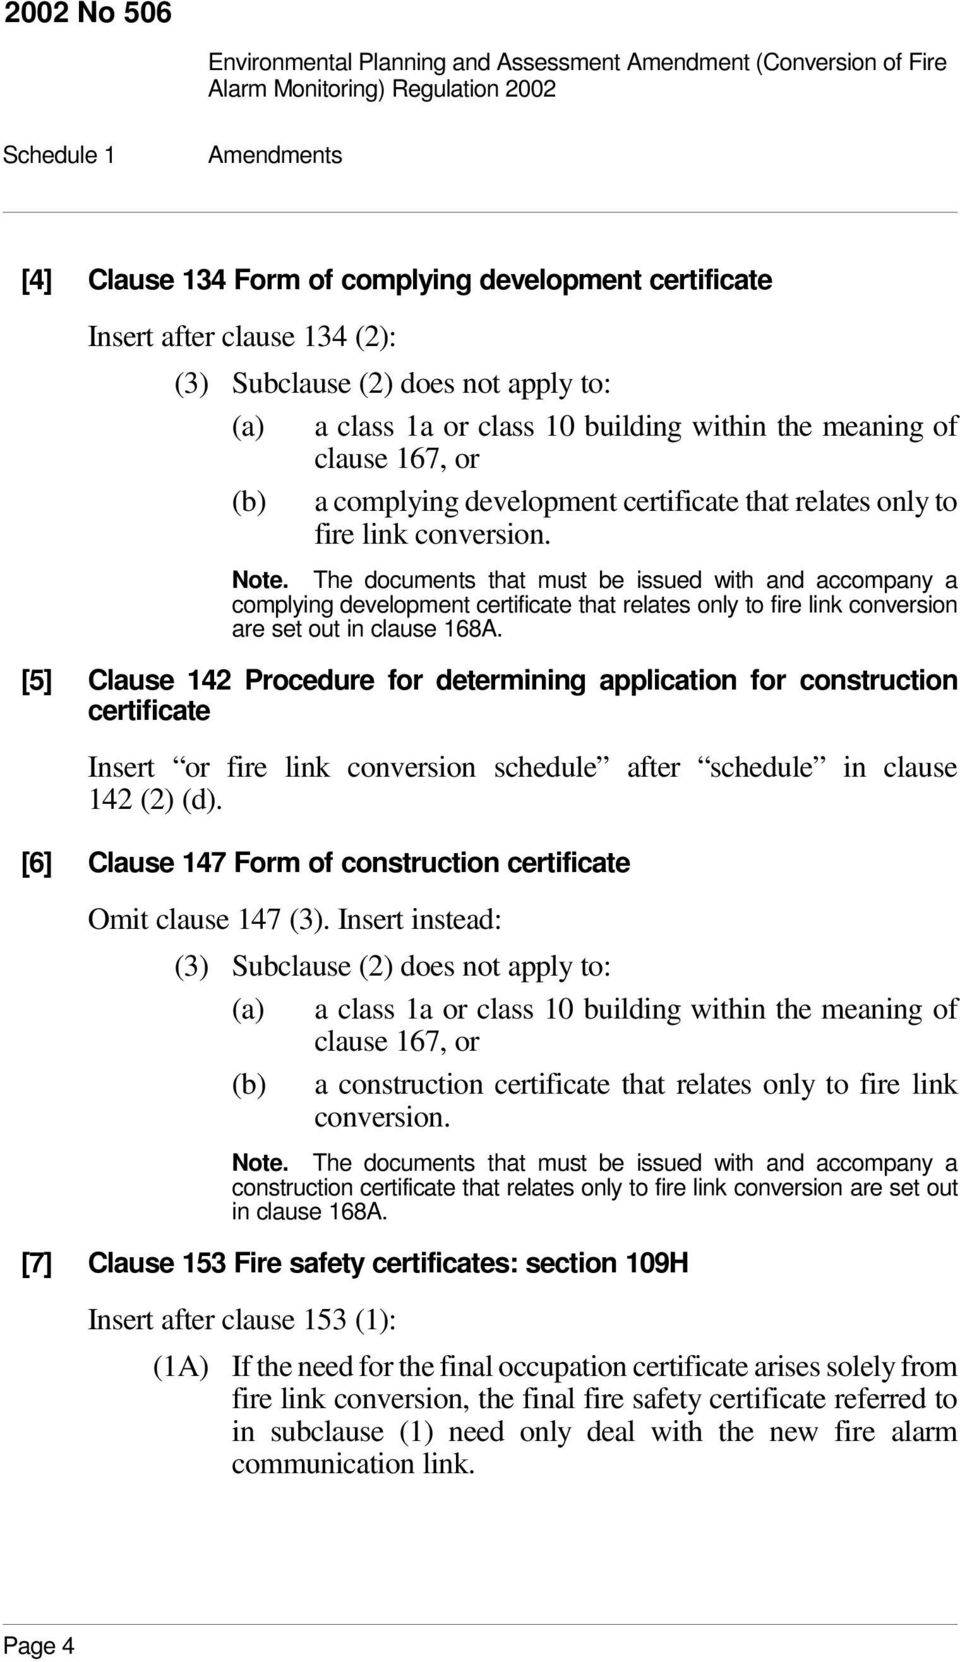 The documents that must be issued with and accompany a complying development certificate that relates only to fire link conversion are set out in clause 168A.